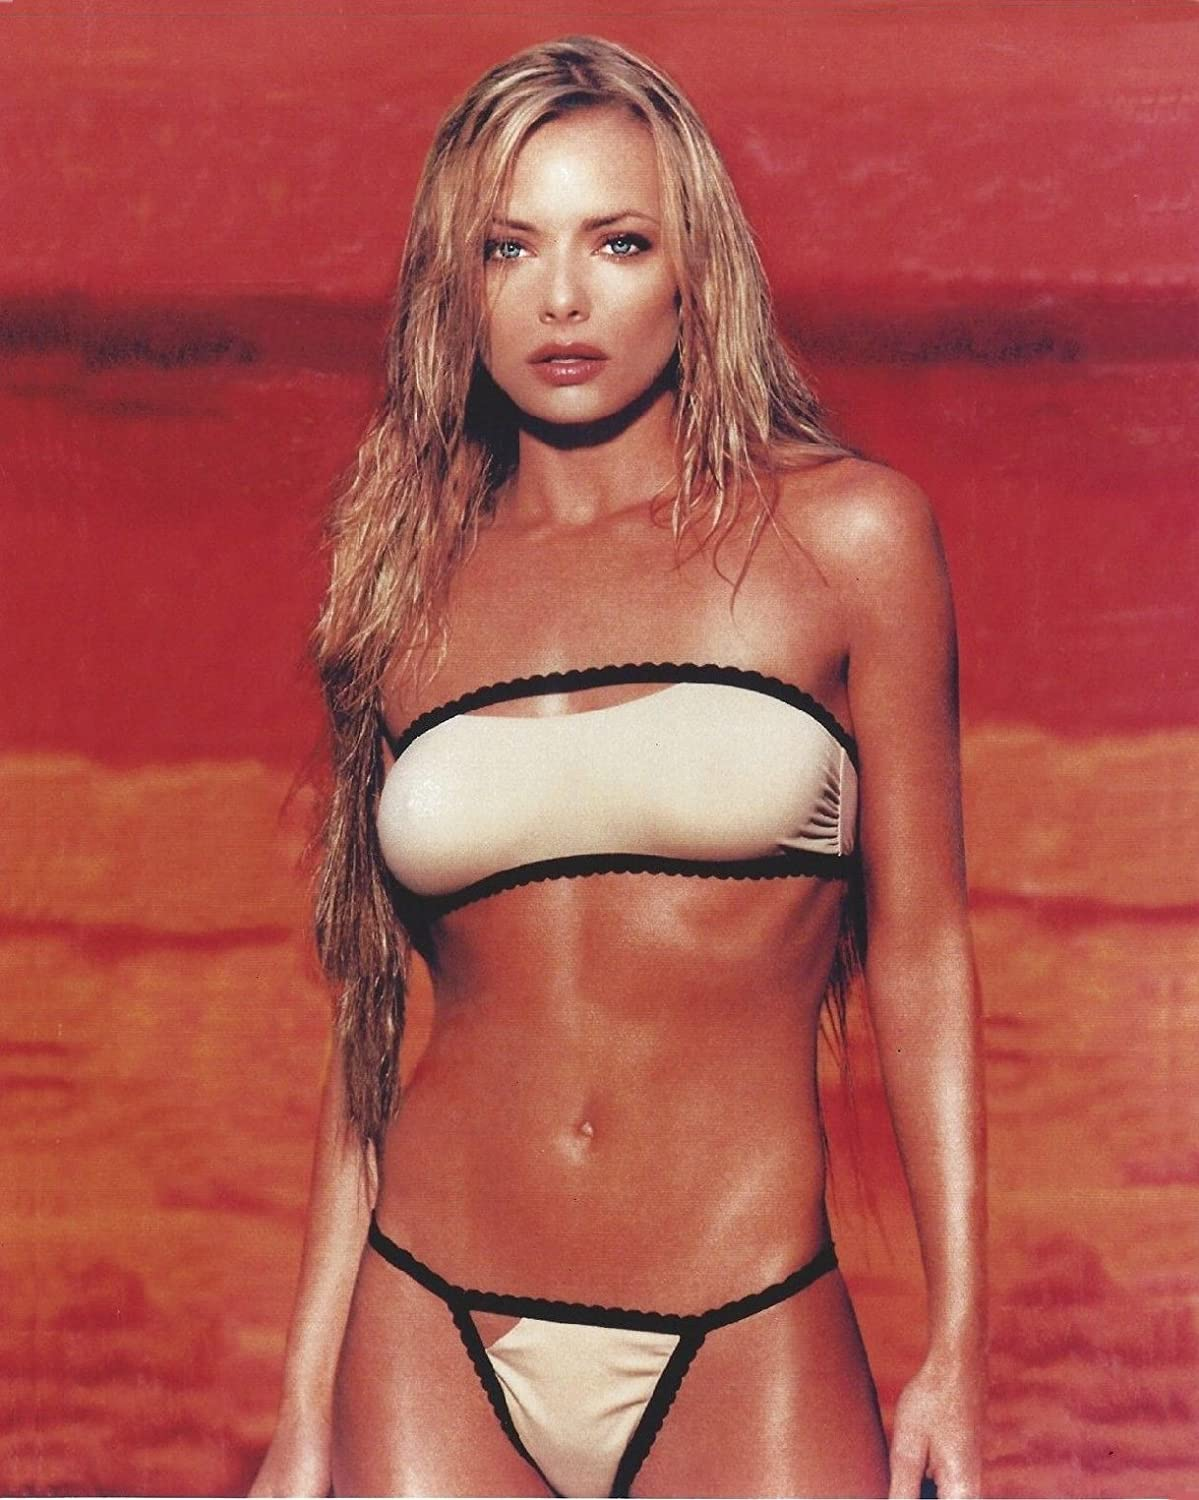 What You See is What You get Jamie Pressly 8x10 Photo #JP19 No White or Black Borders